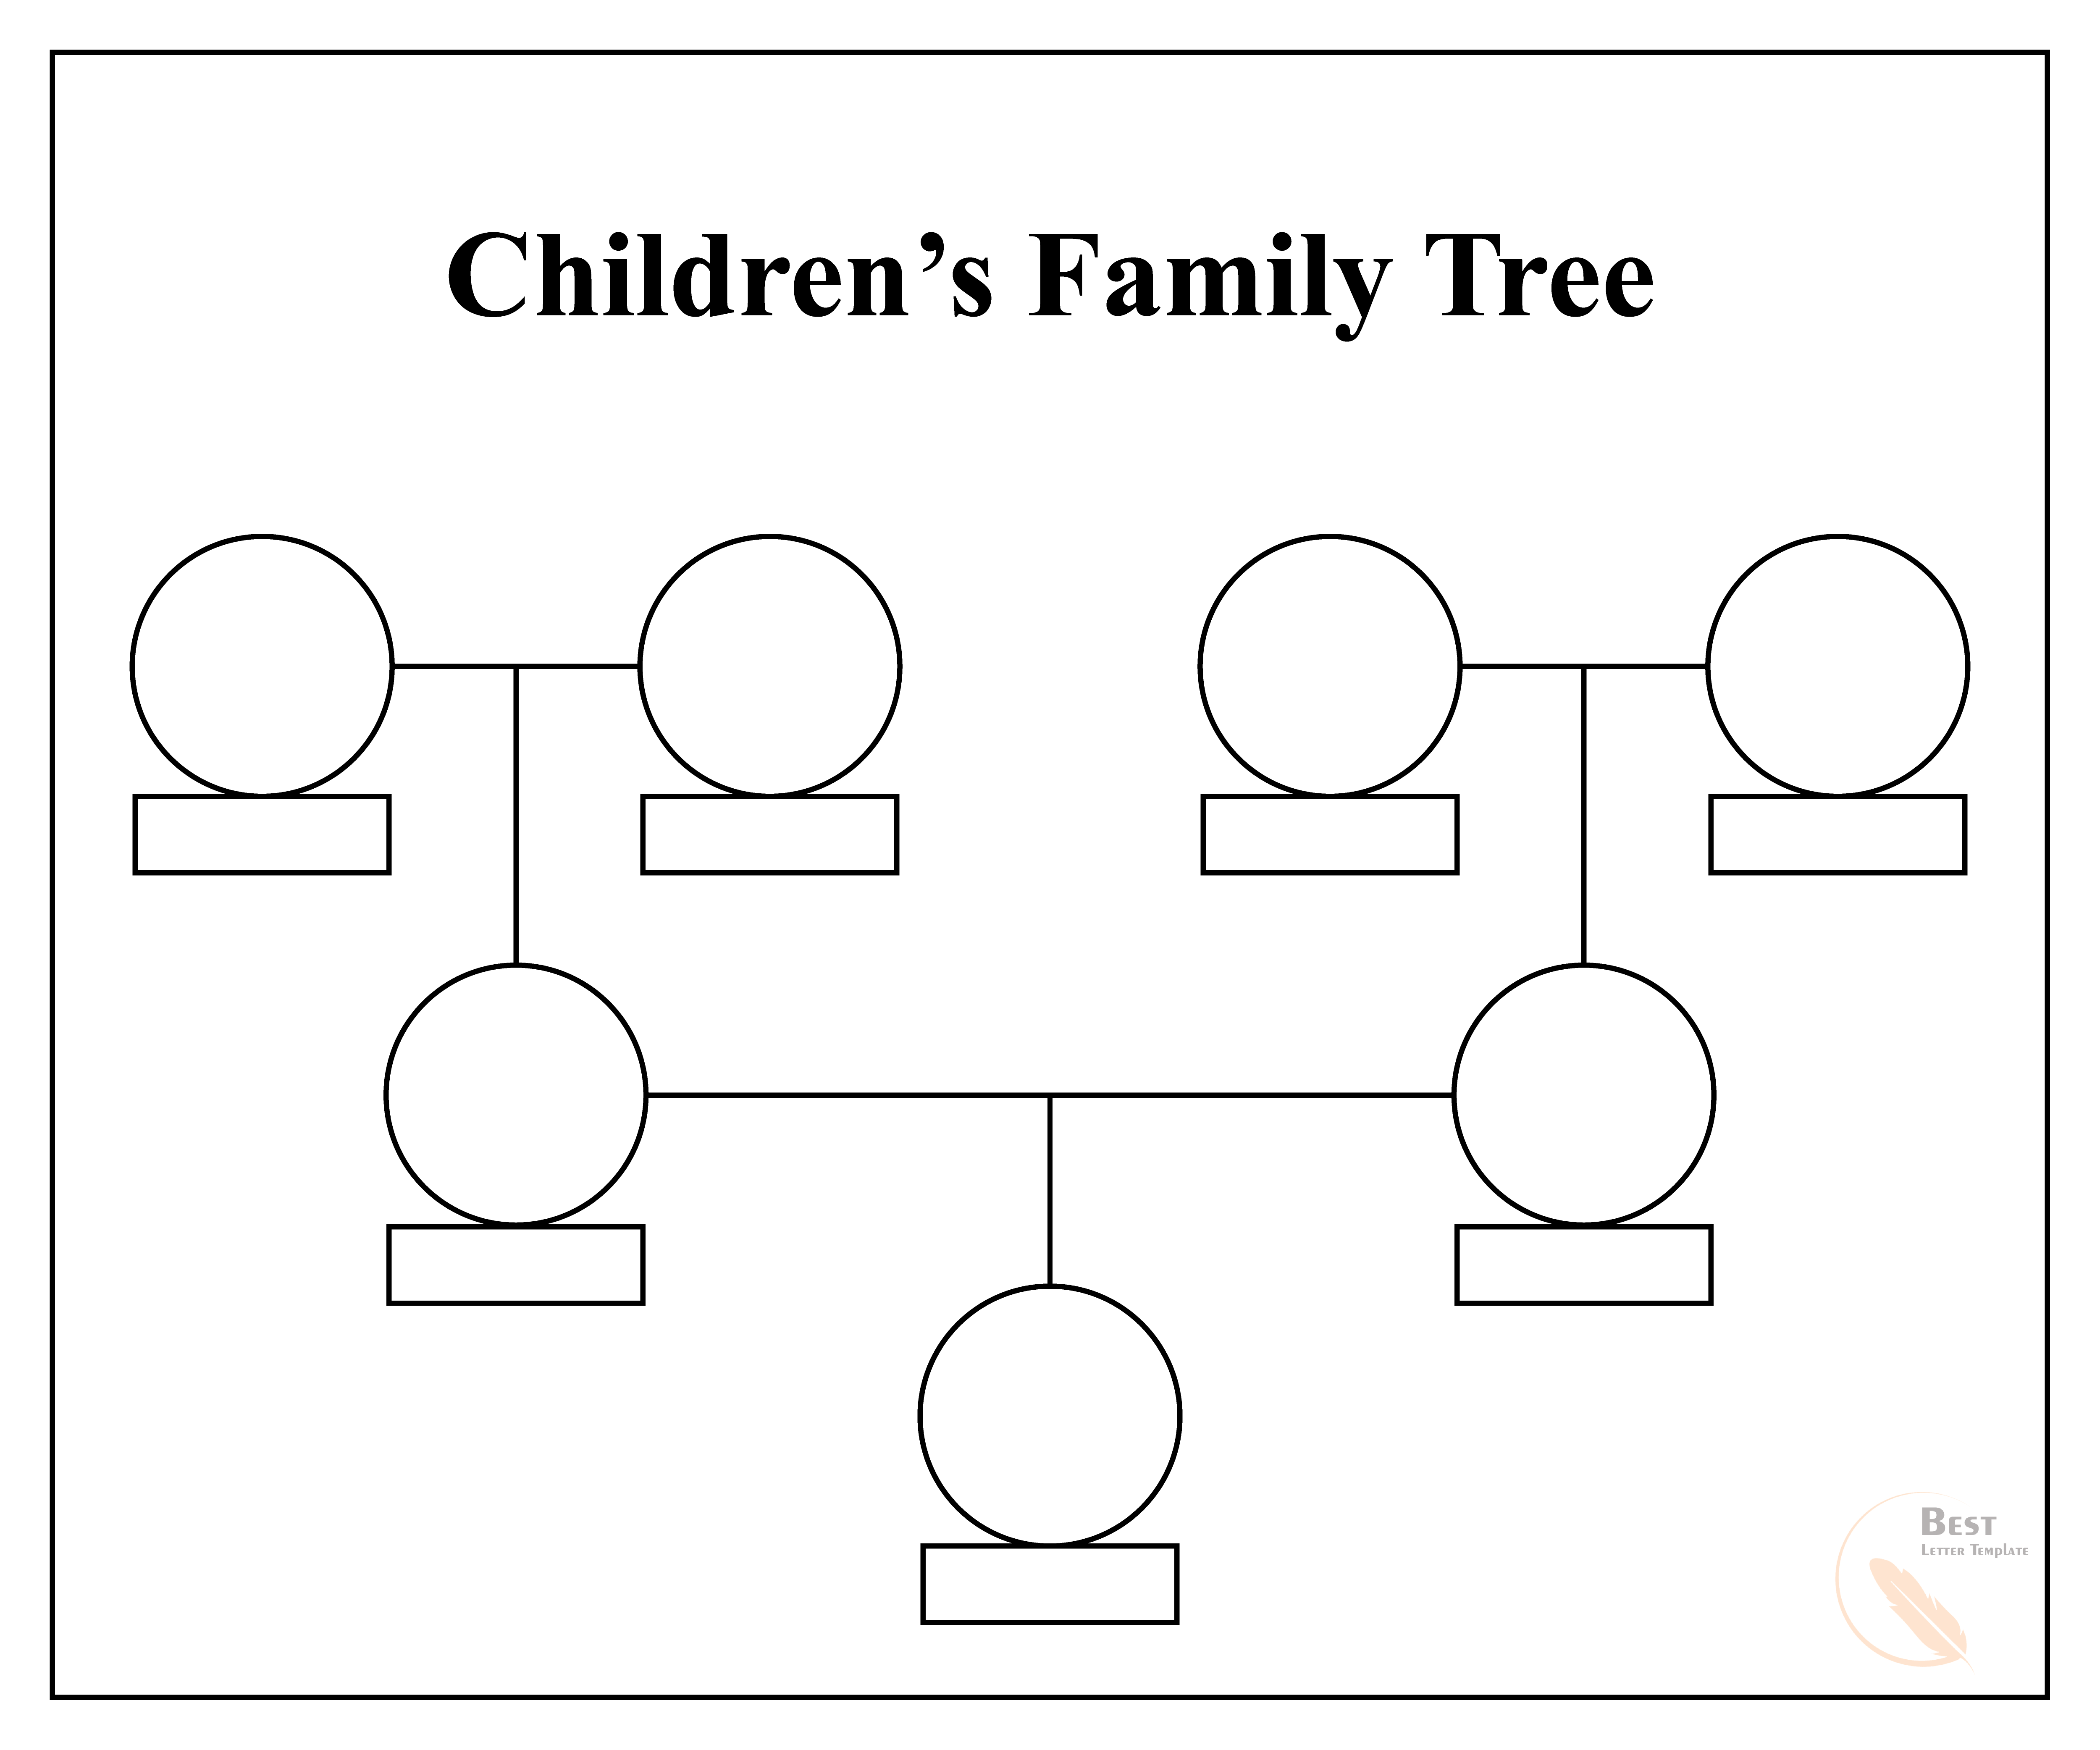 Children's Family Tree Template